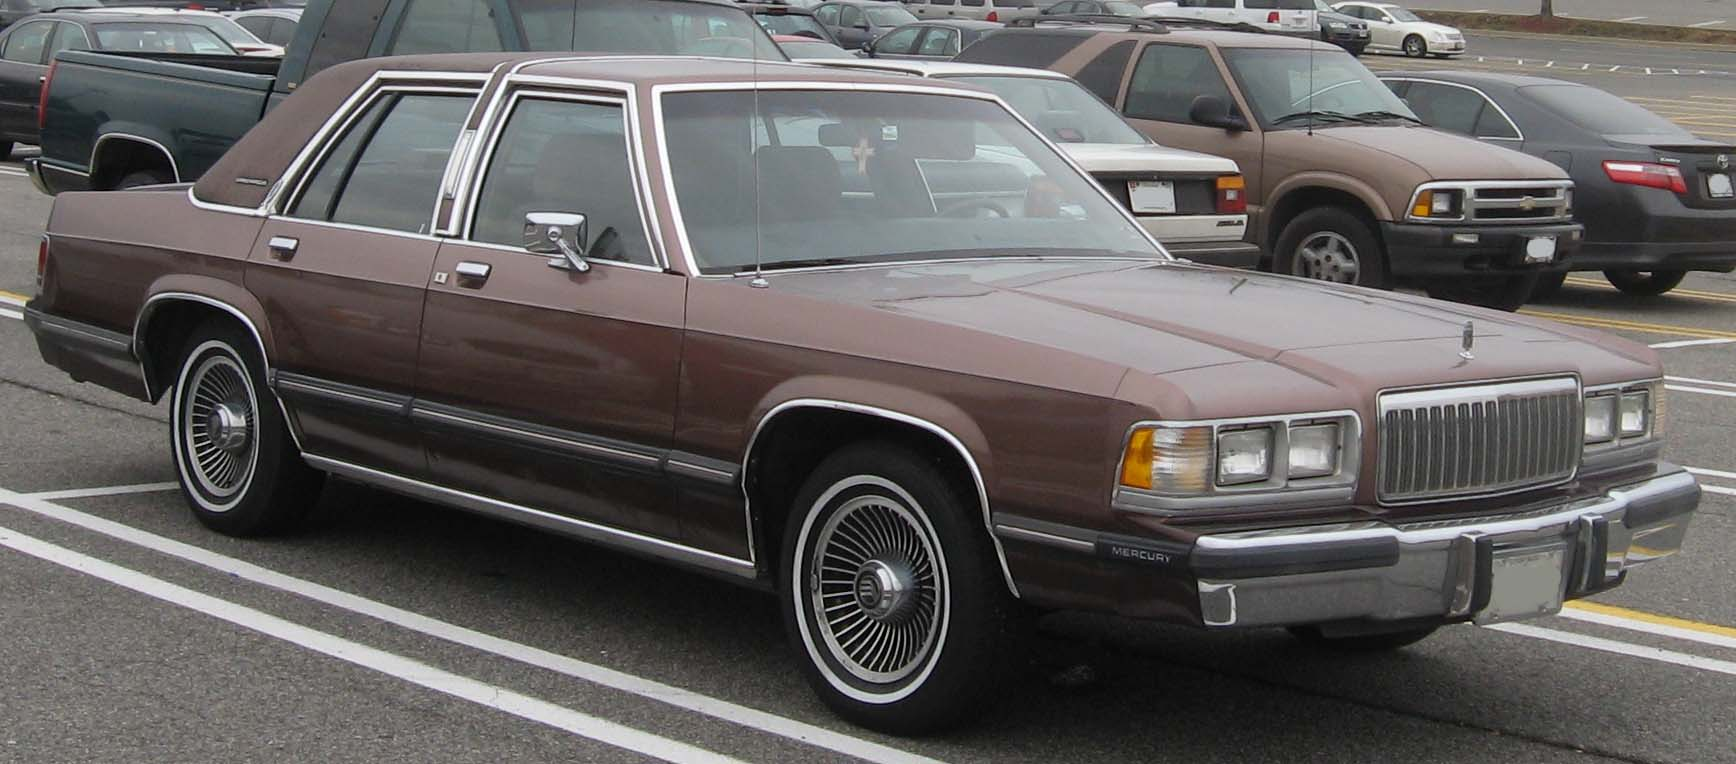 file 88 91 mercury grand marquis jpg wikimedia commons rh commons wikimedia  org Mercury 4.6 Engine Diagram Mercury 4.6 Engine Diagram